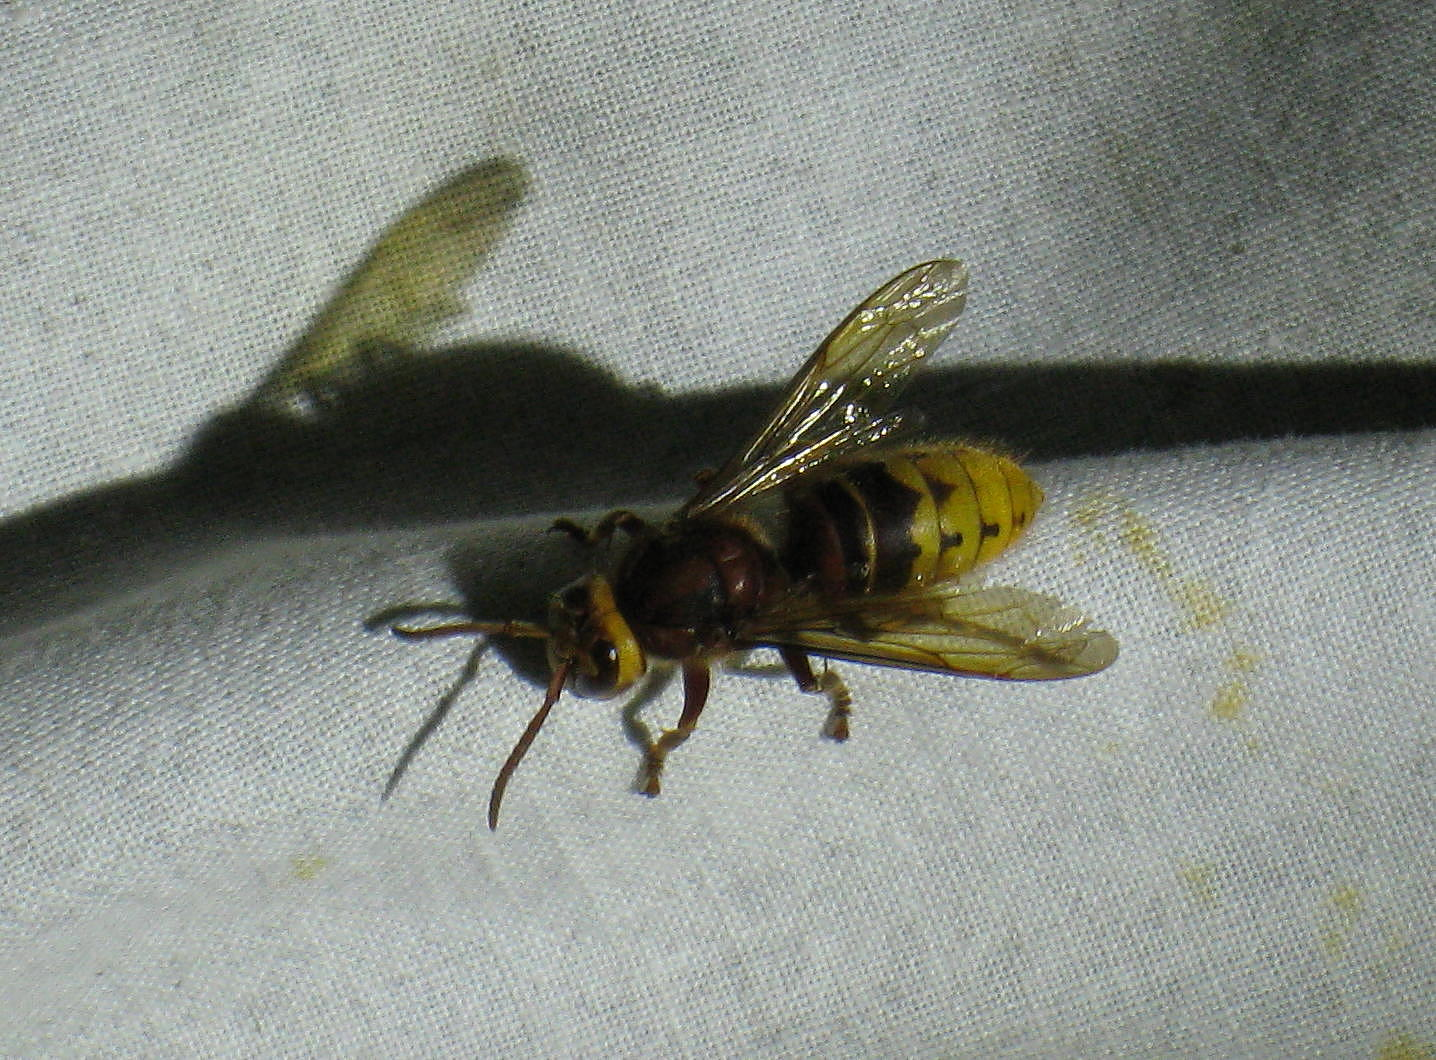 Queen Hornet Insect Is a young queen hornet Queen Hornet Insect